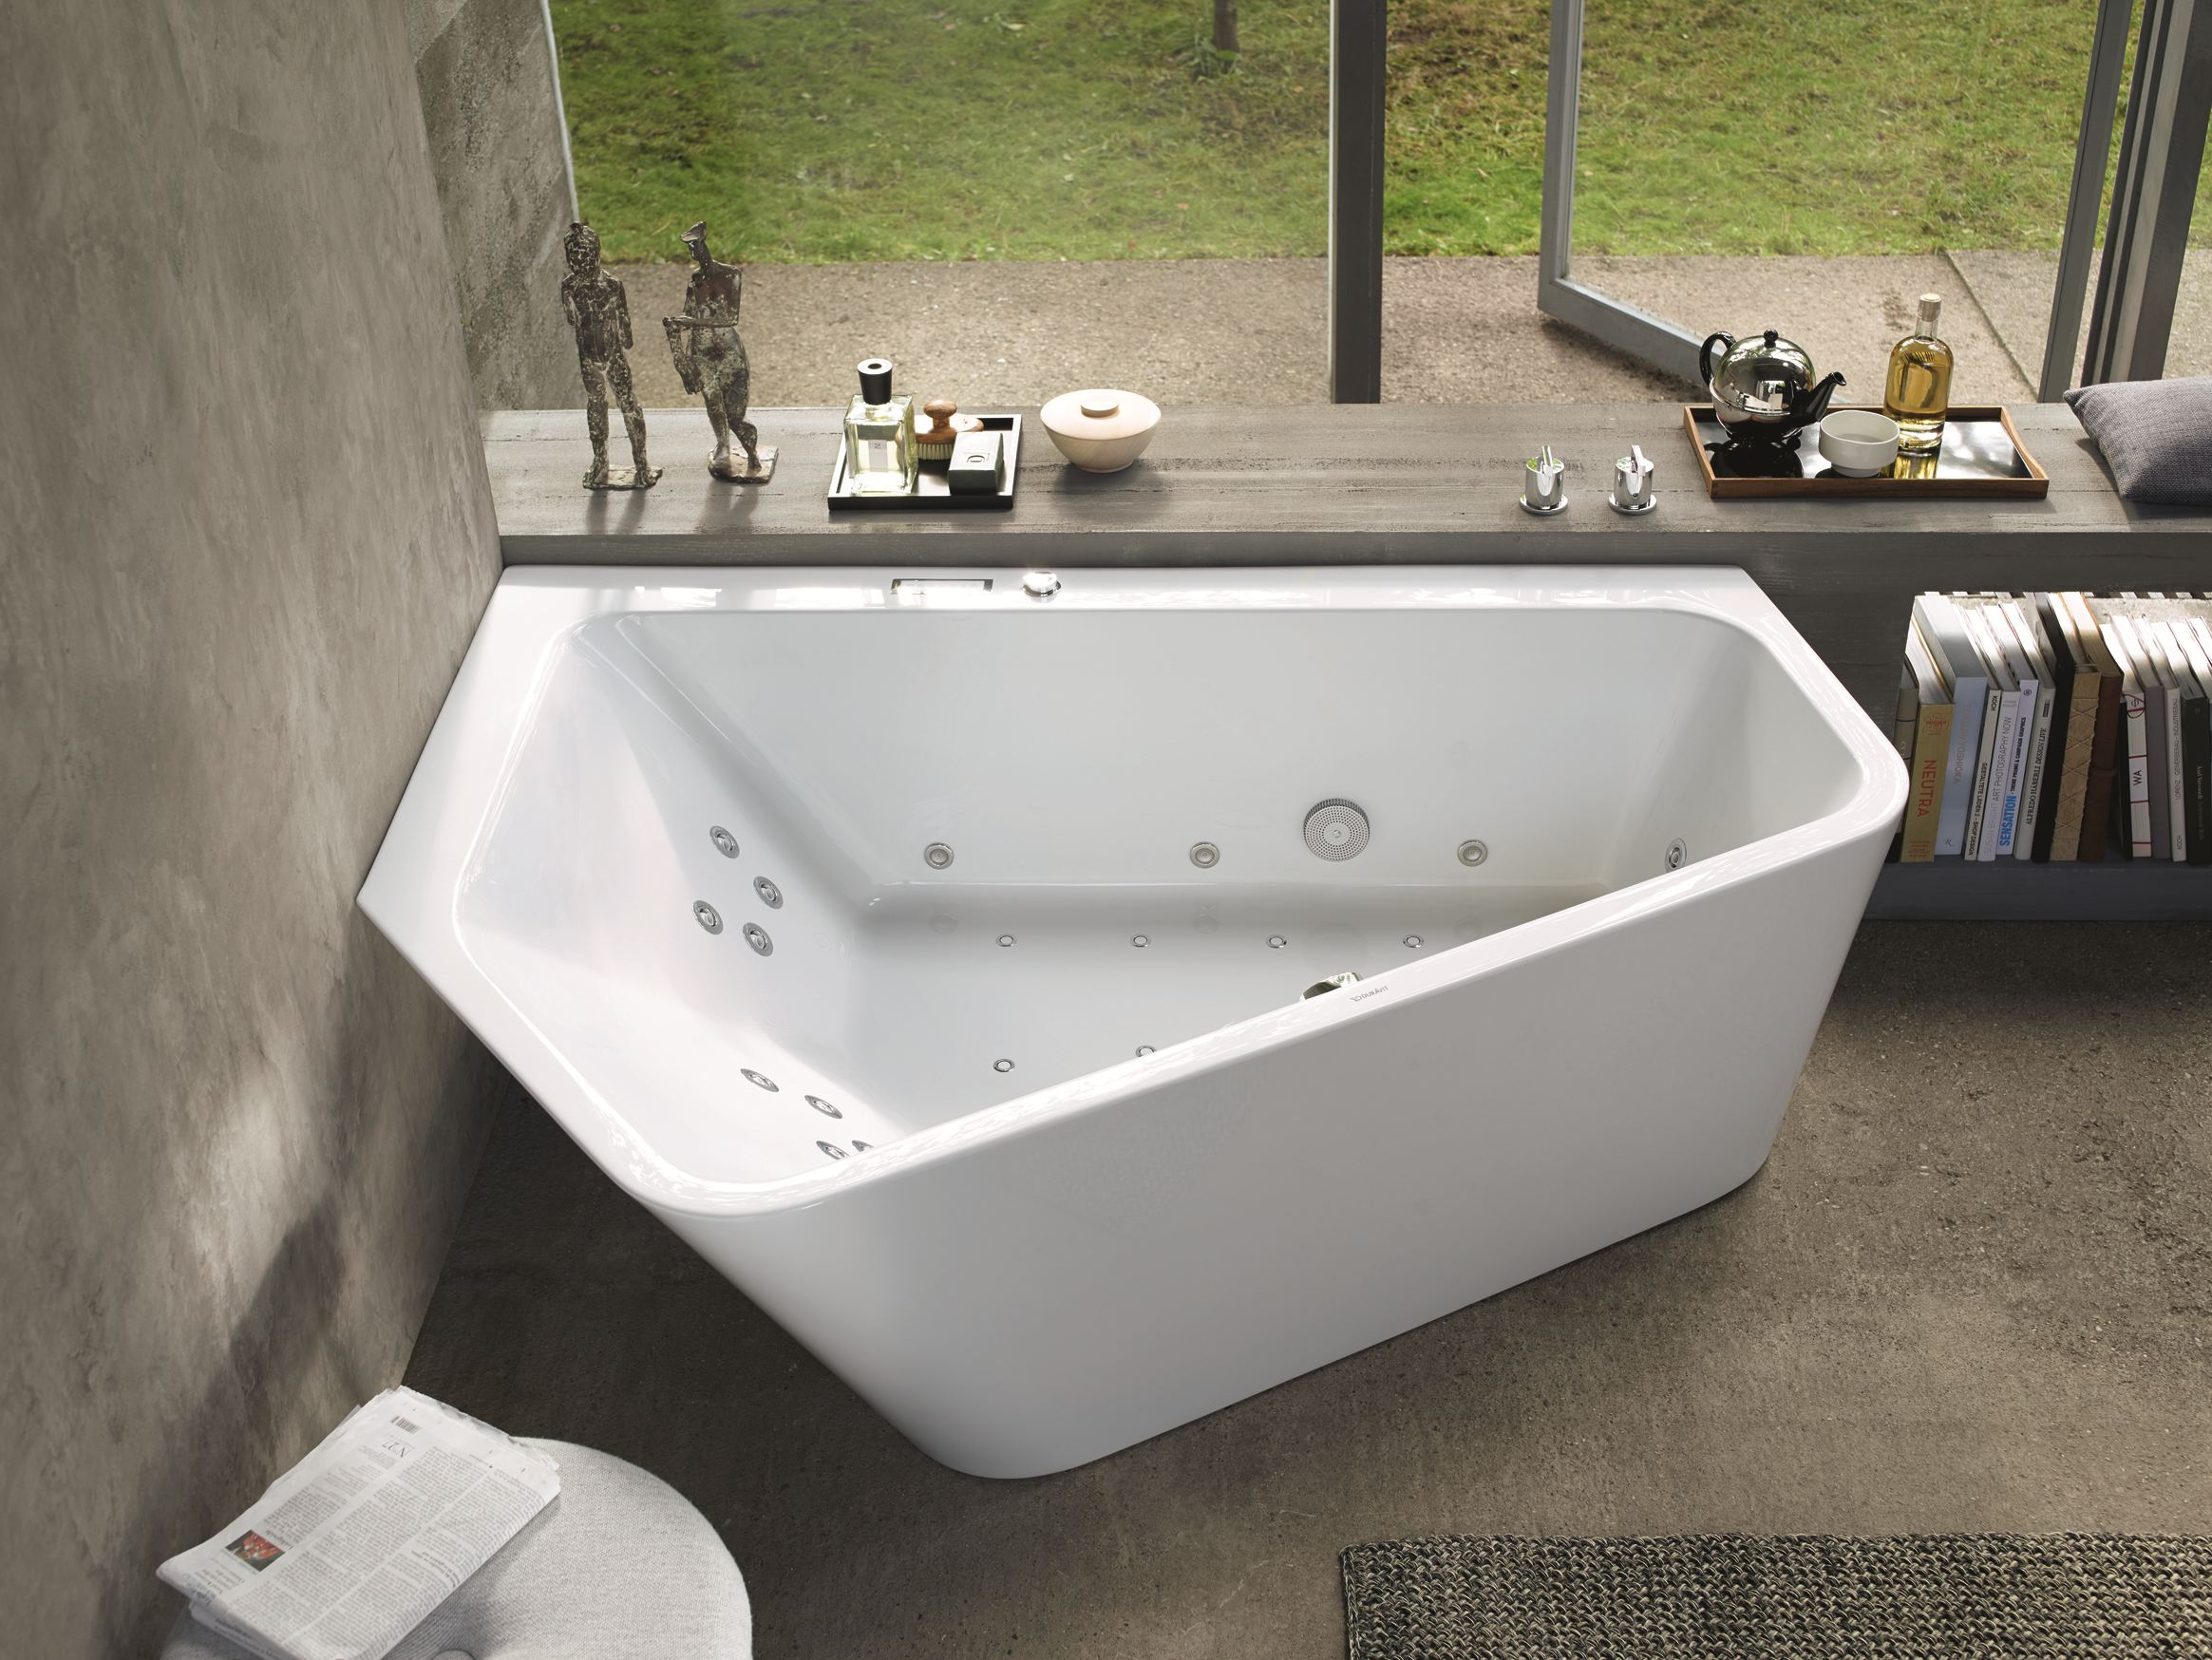 Paiova 5 badewanne by duravit design eoos for Badewanne design